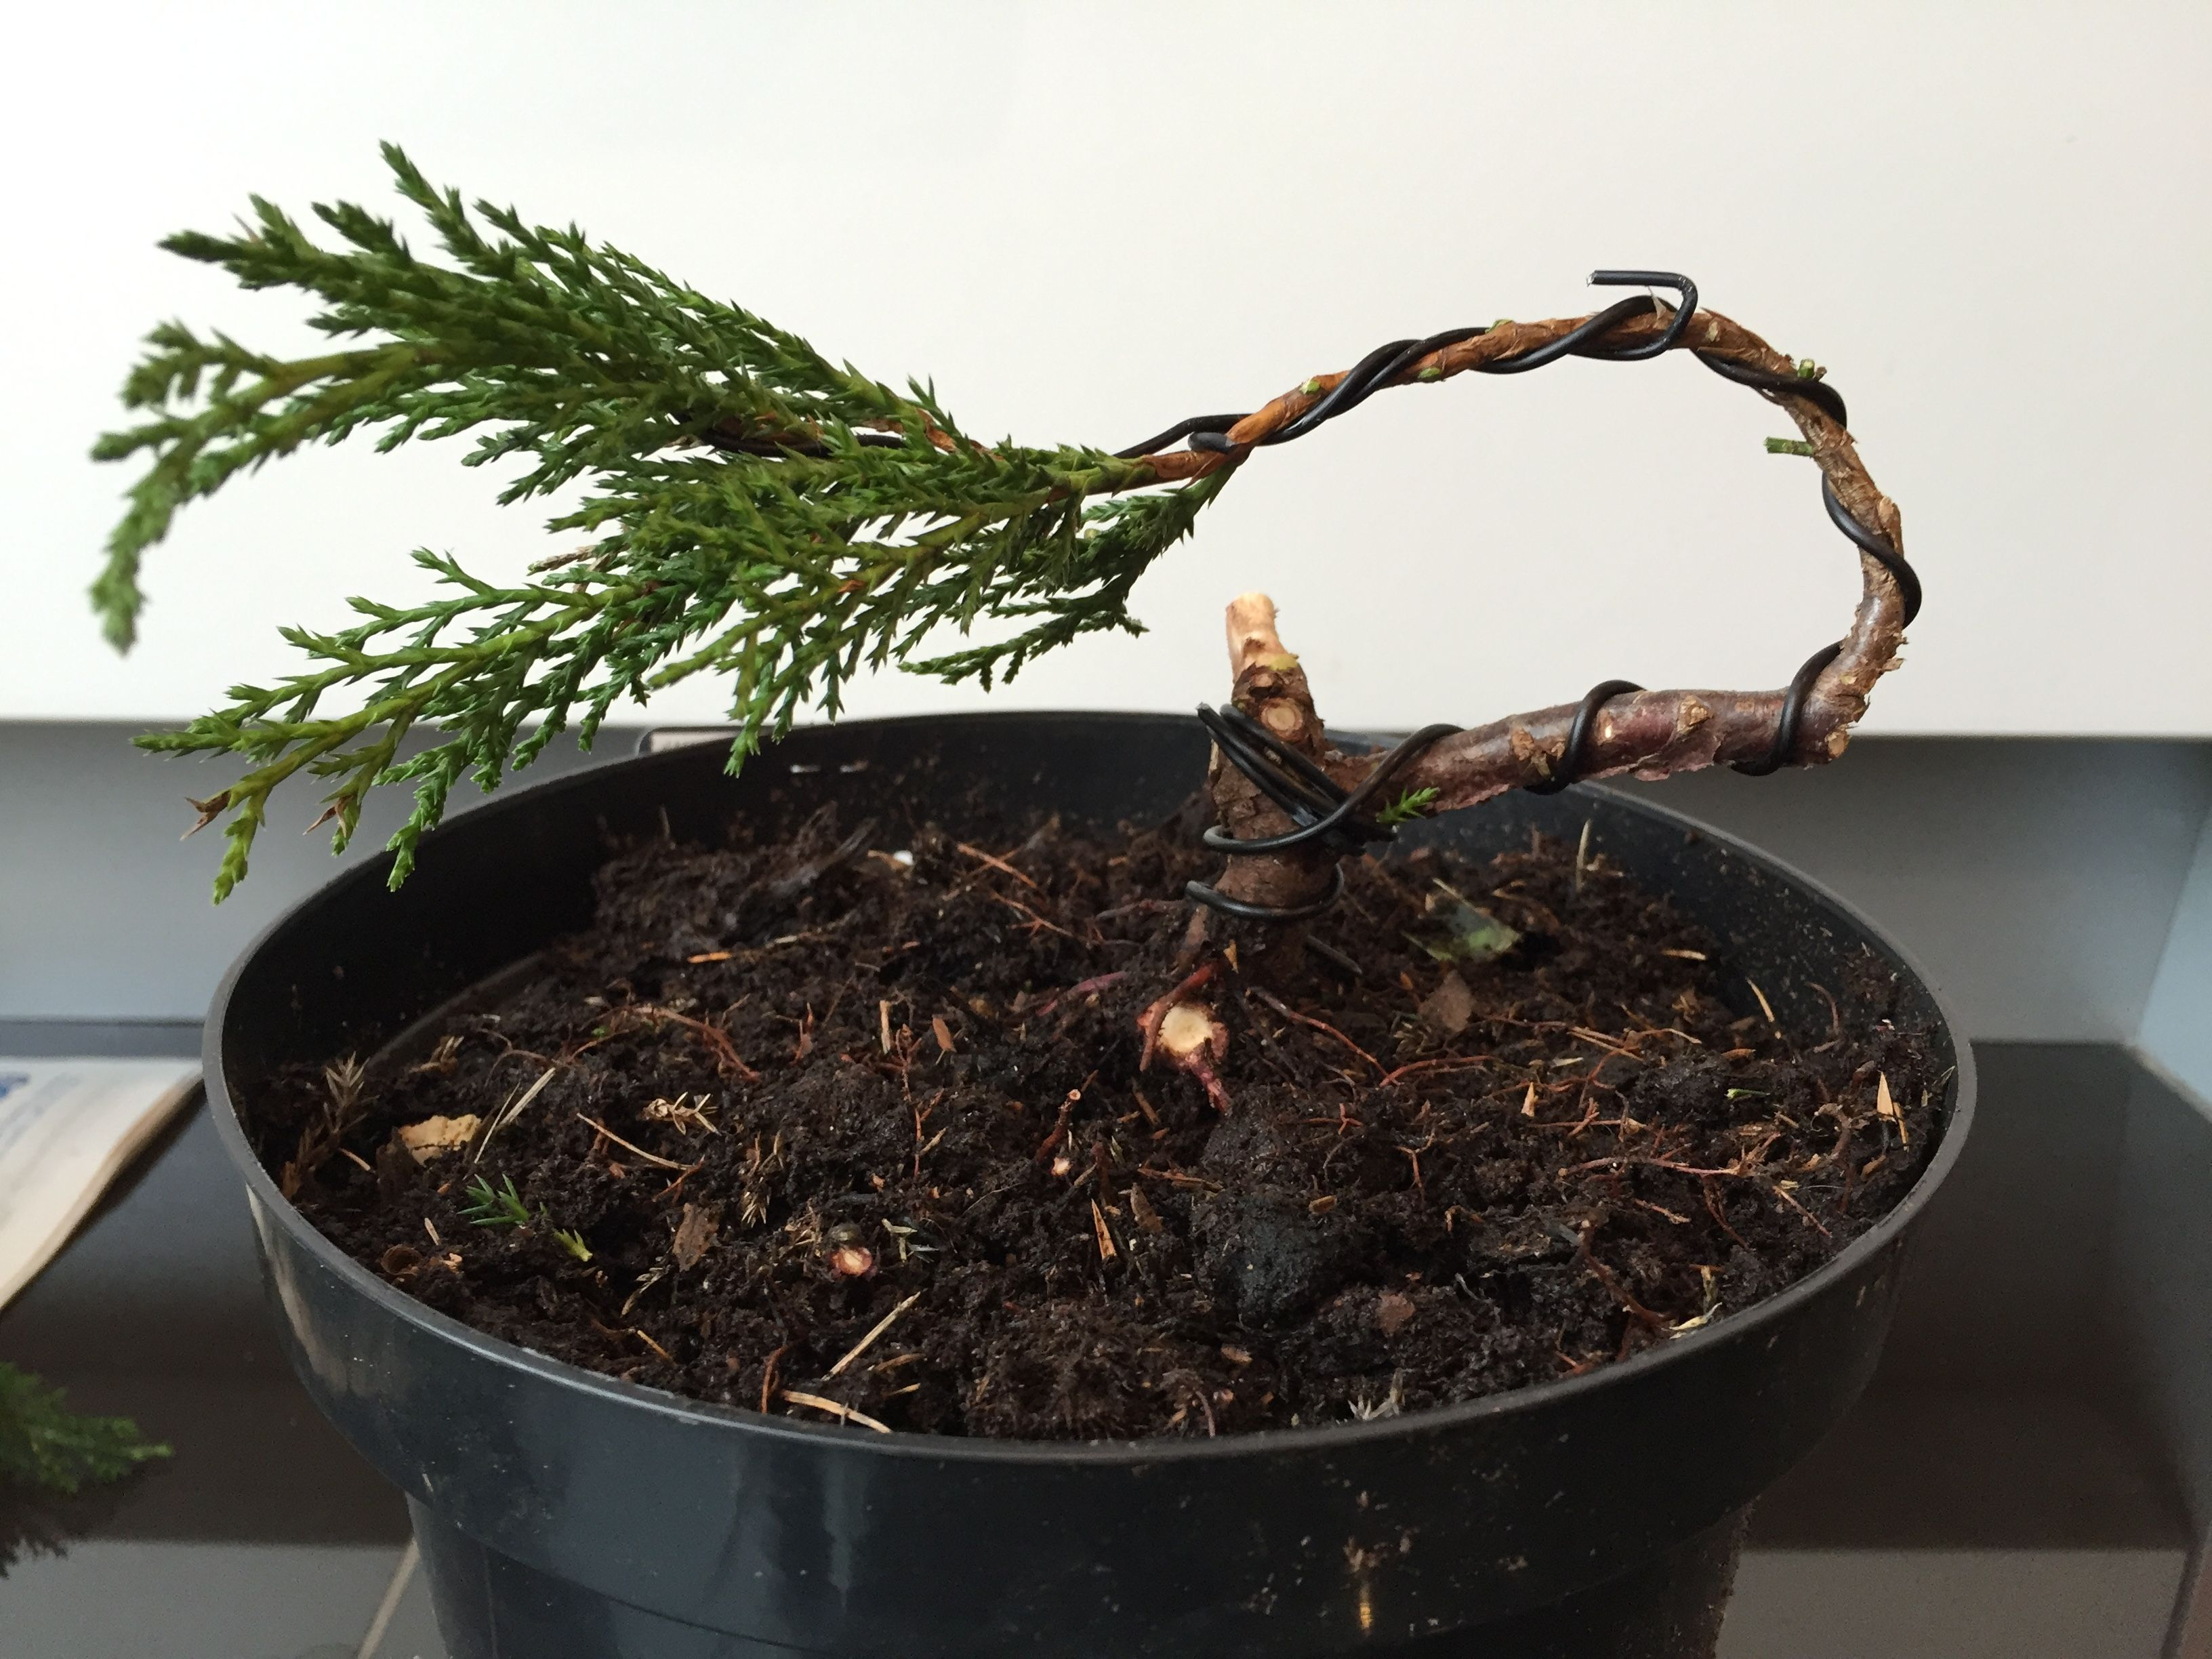 sabina juniper bonsai nursery stock tree after initial pruning and rh pinterest com Weeping Willow Bonsai Weeping Willow Bonsai